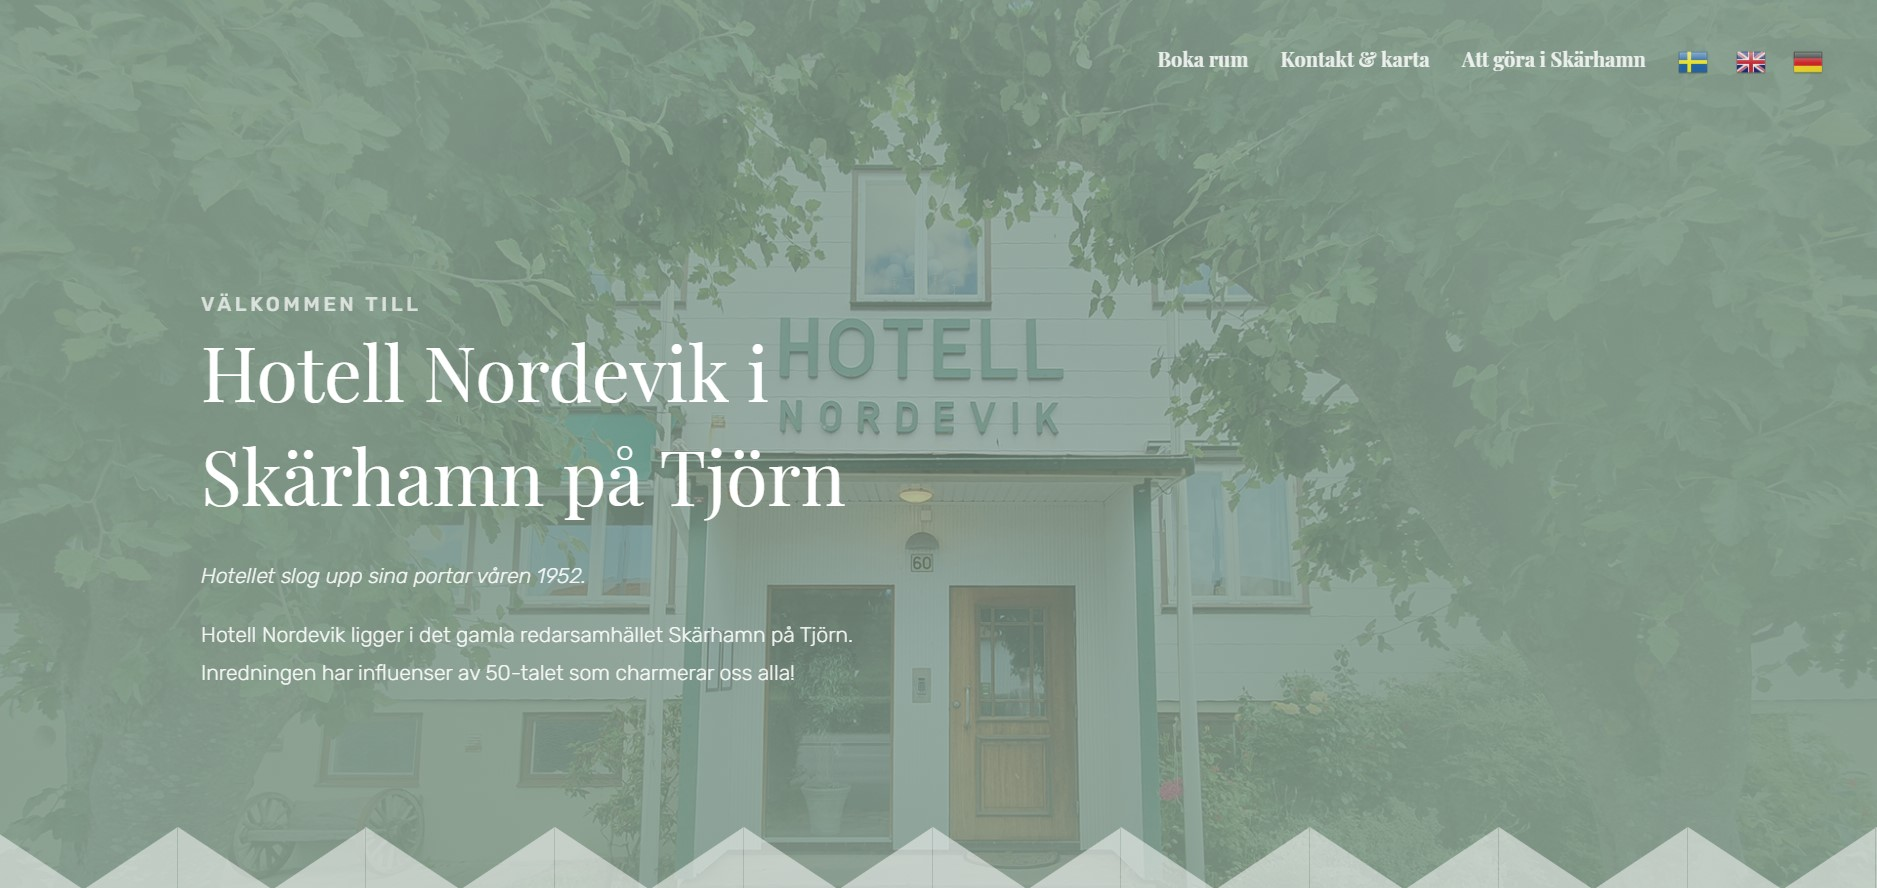 Nordevik hotel website design